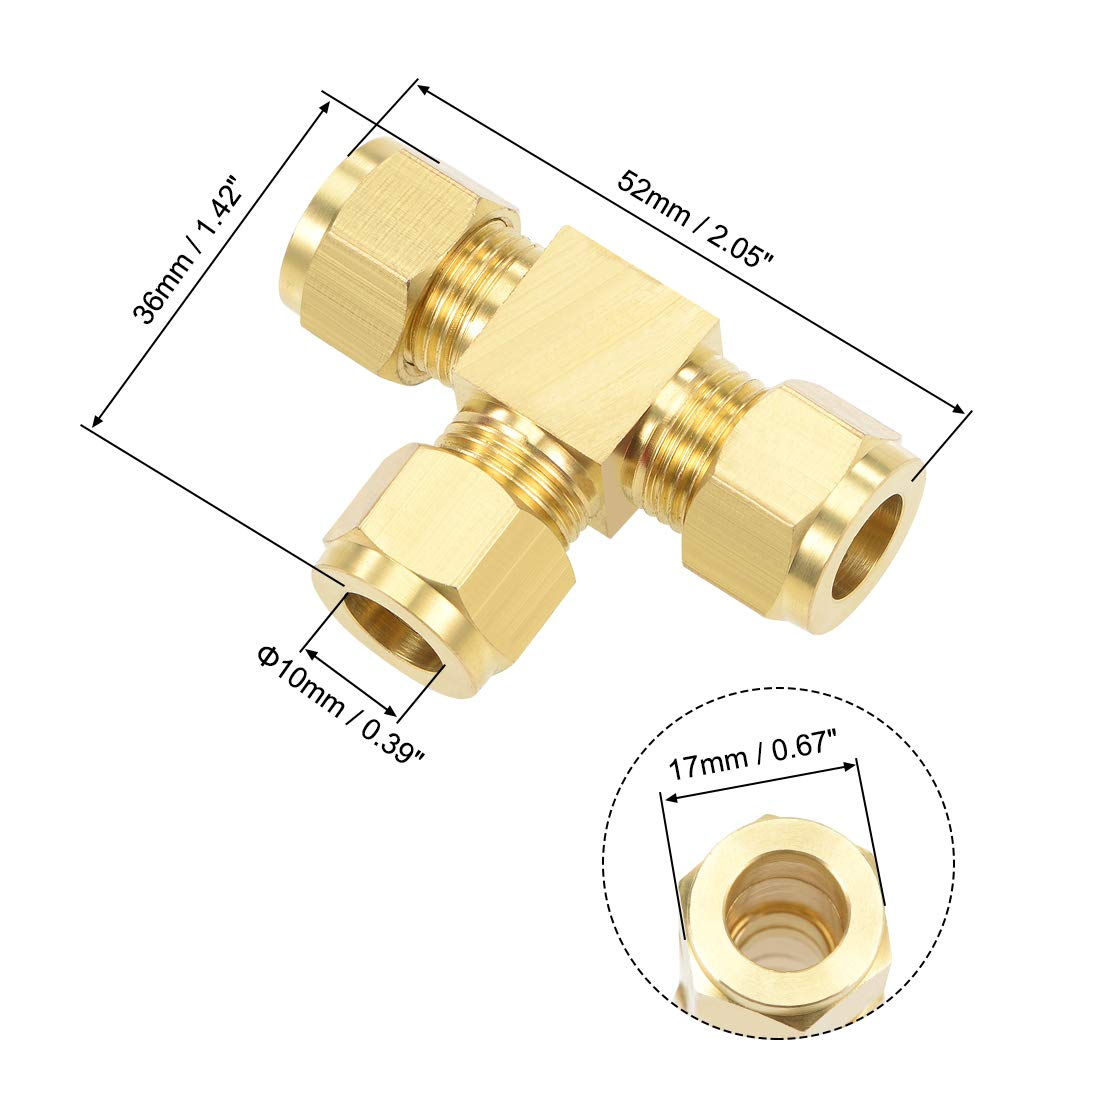 uxcell Pipe Adapter Copper Compression Tube Fitting 10mm OD Tee Pipes for Water Garden Irrigation System 2pcs